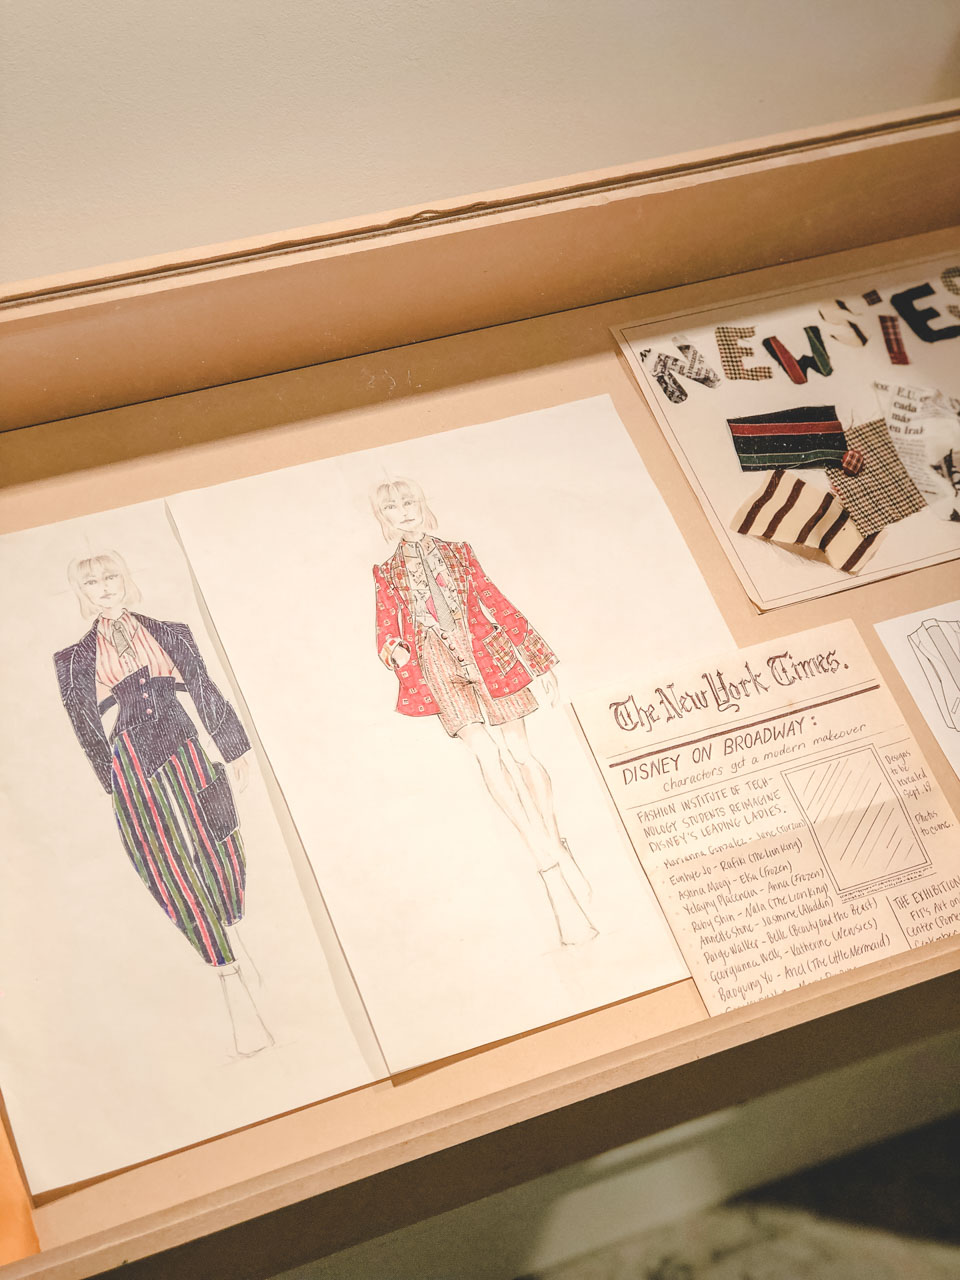 Sketches at the Disney on Broadway x FIT Design Challenge Exhibition in New York